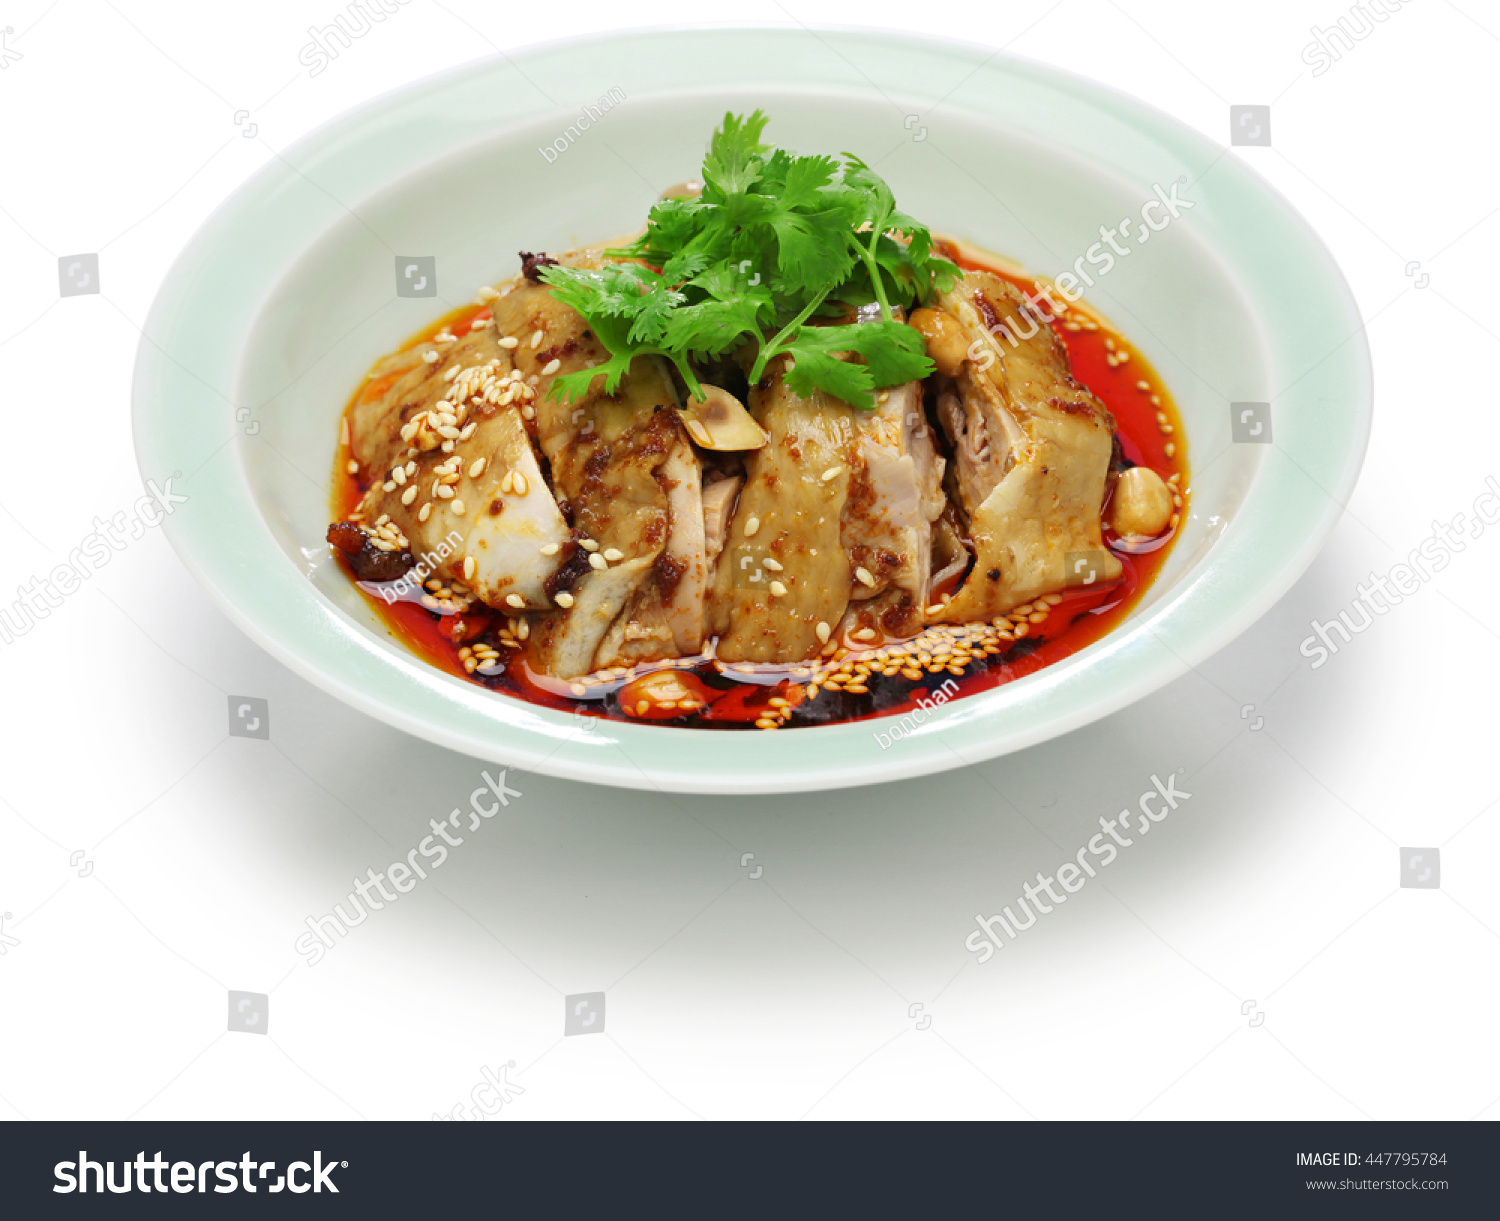 saliva chicken, mouthwatering chicken, poached chicken with chili oil ...